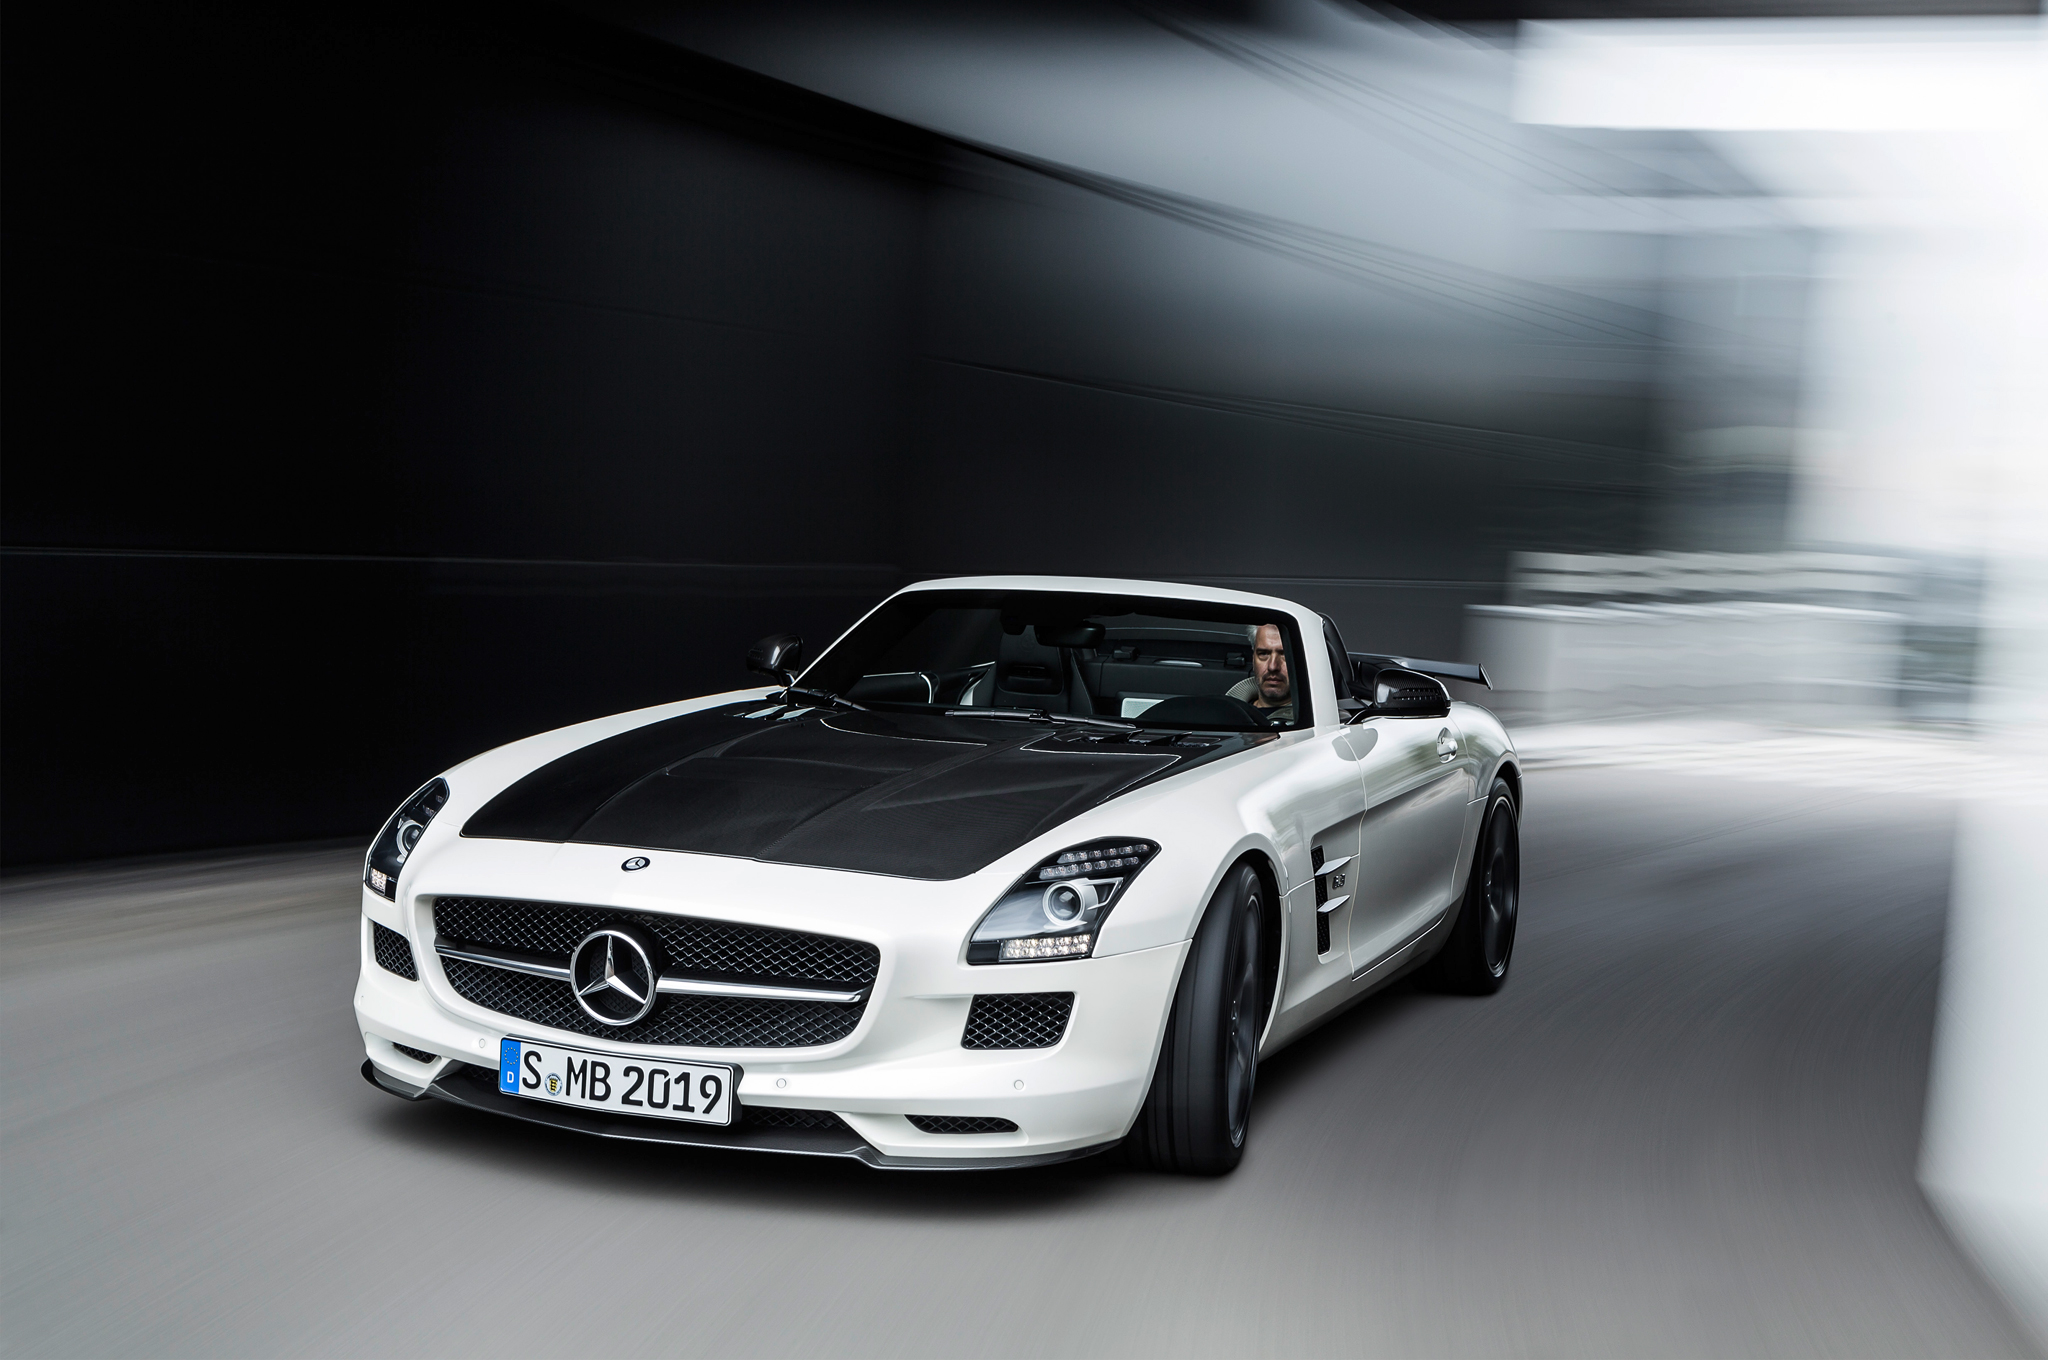 2015 Mercedes-Benz Sls Amg Gt Final Edition #26